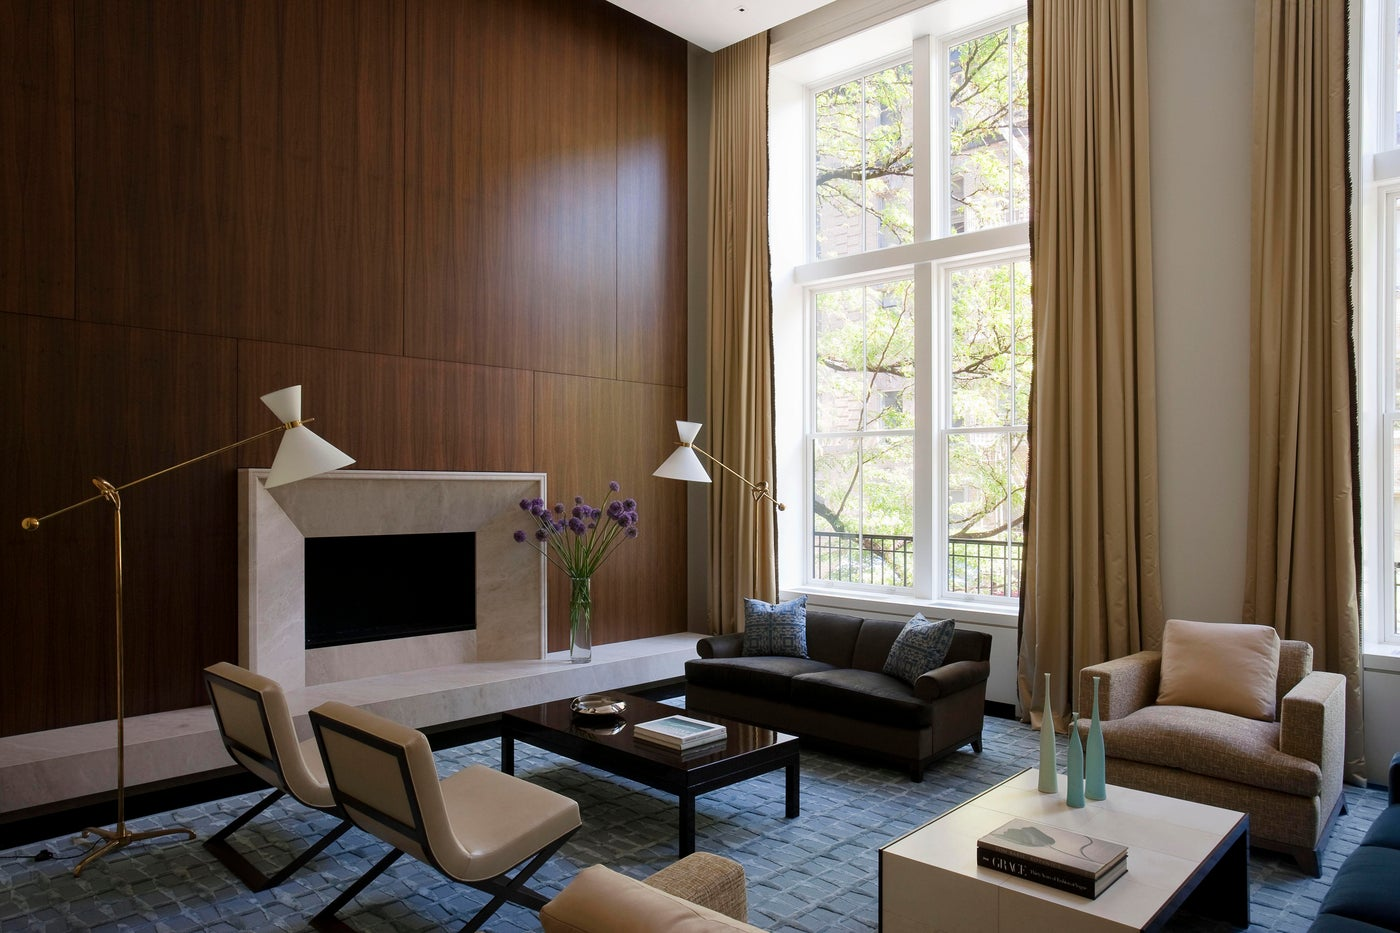 NYC Modern Townhouse Living Room with vintage lamps, and walnut paneling.